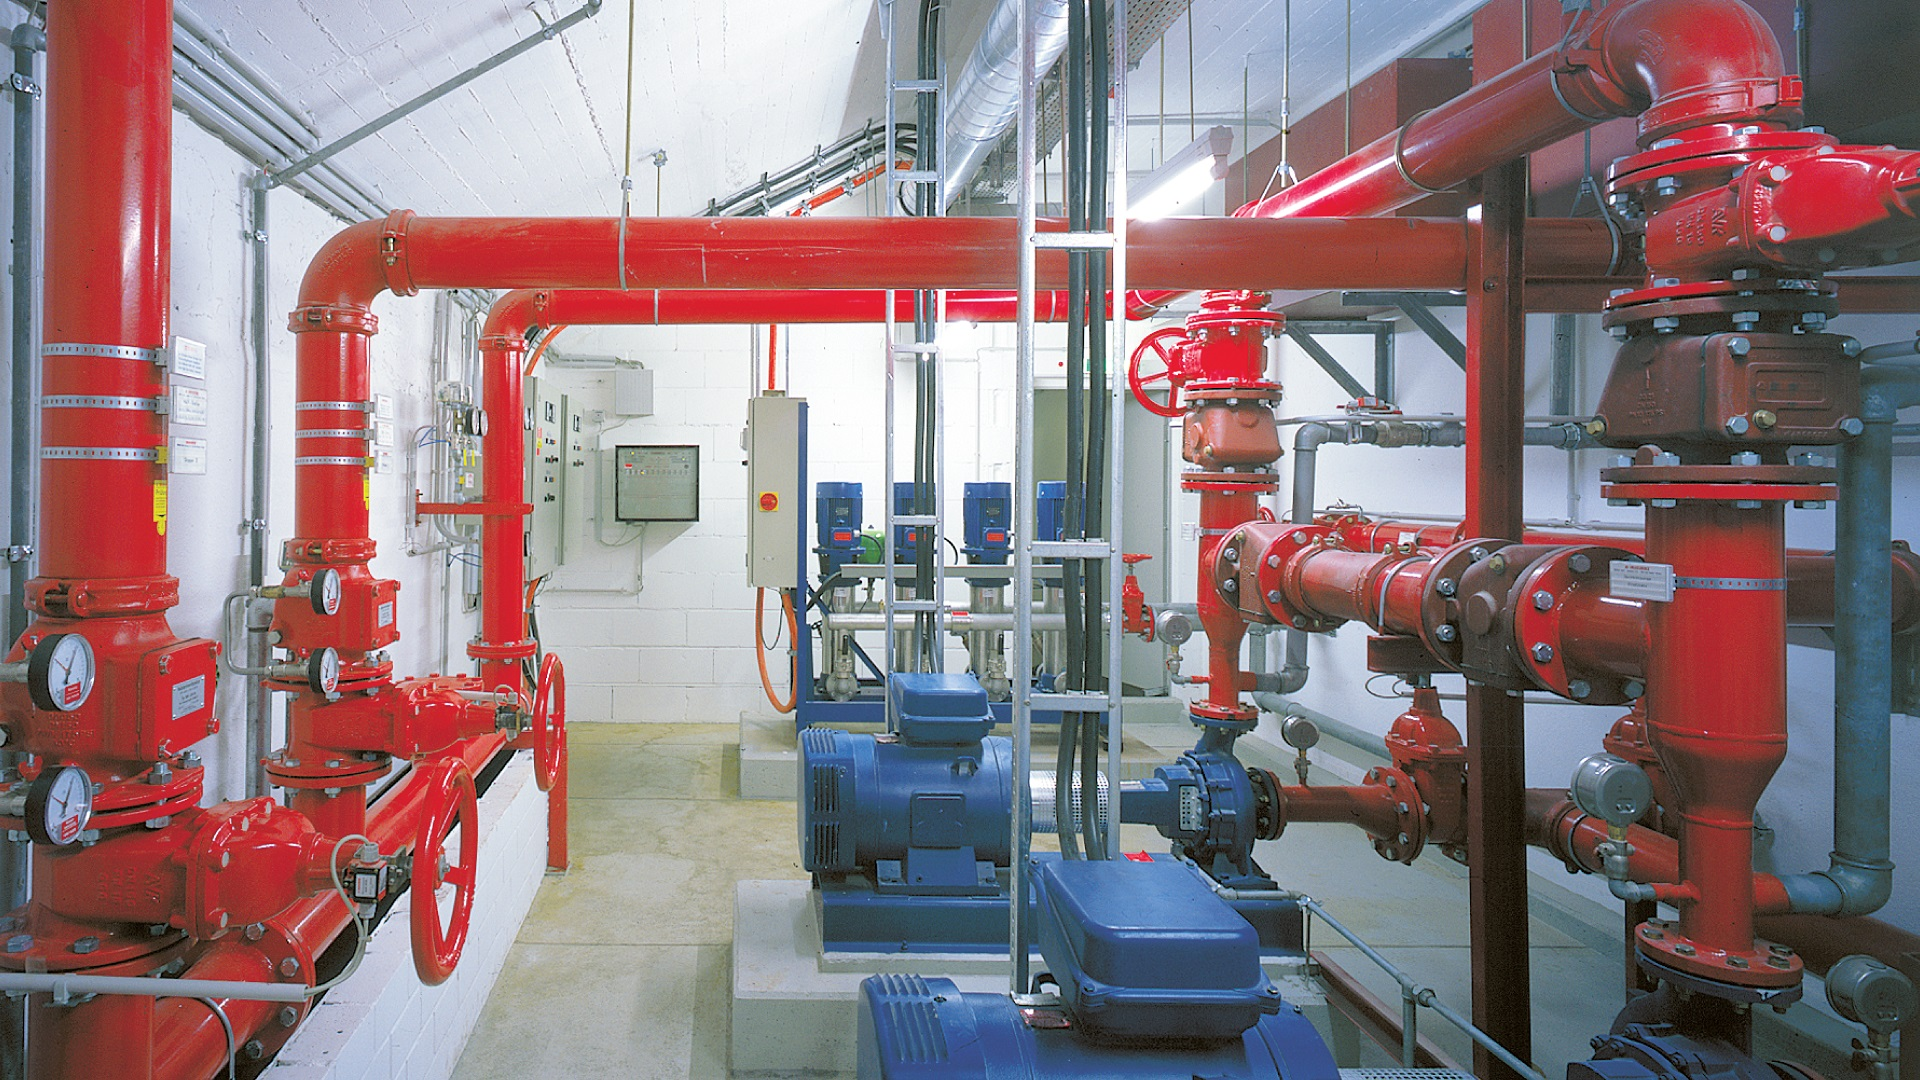 Indoor Fire protection